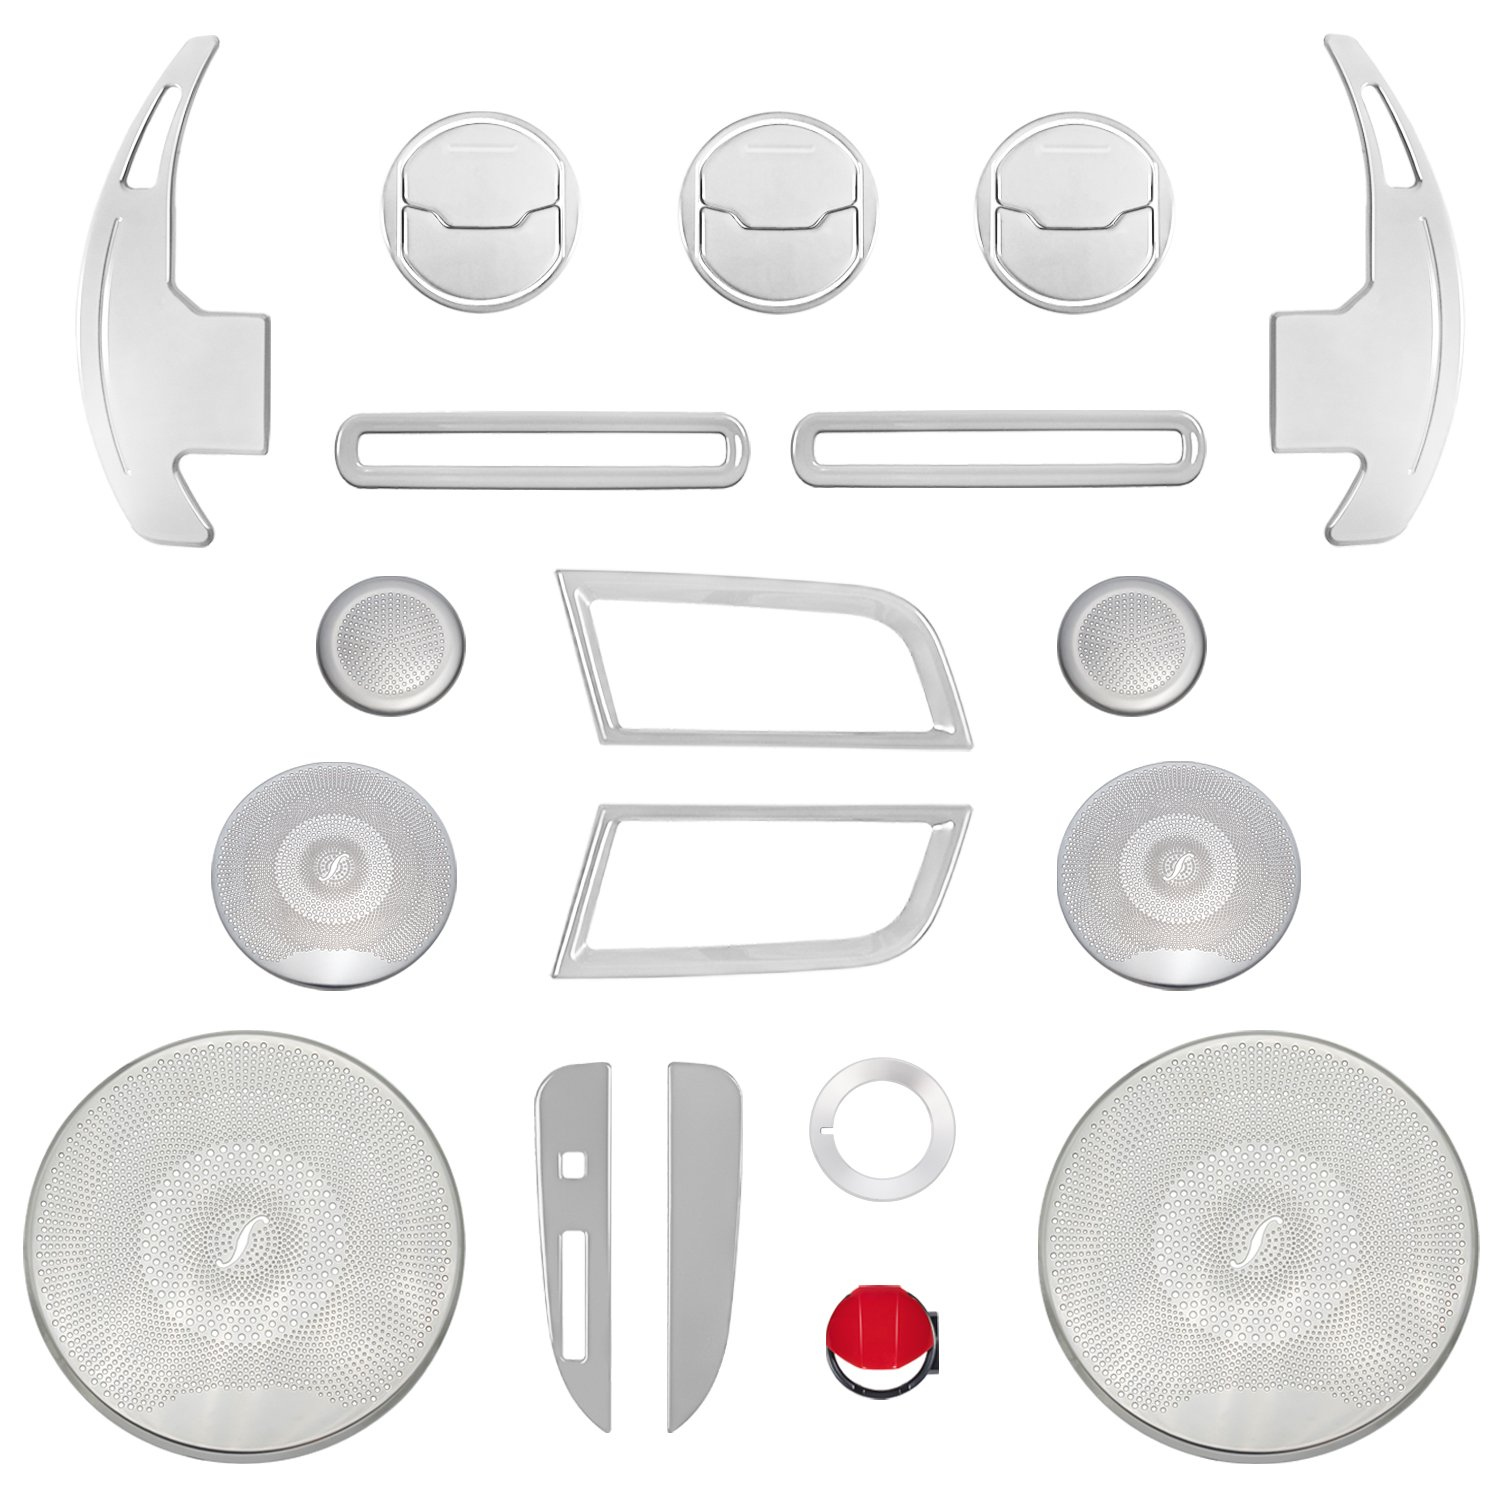 Yoursme 25PCS Interior Accessories for Ford Mustang 2015 2016 2017 2018 Silver